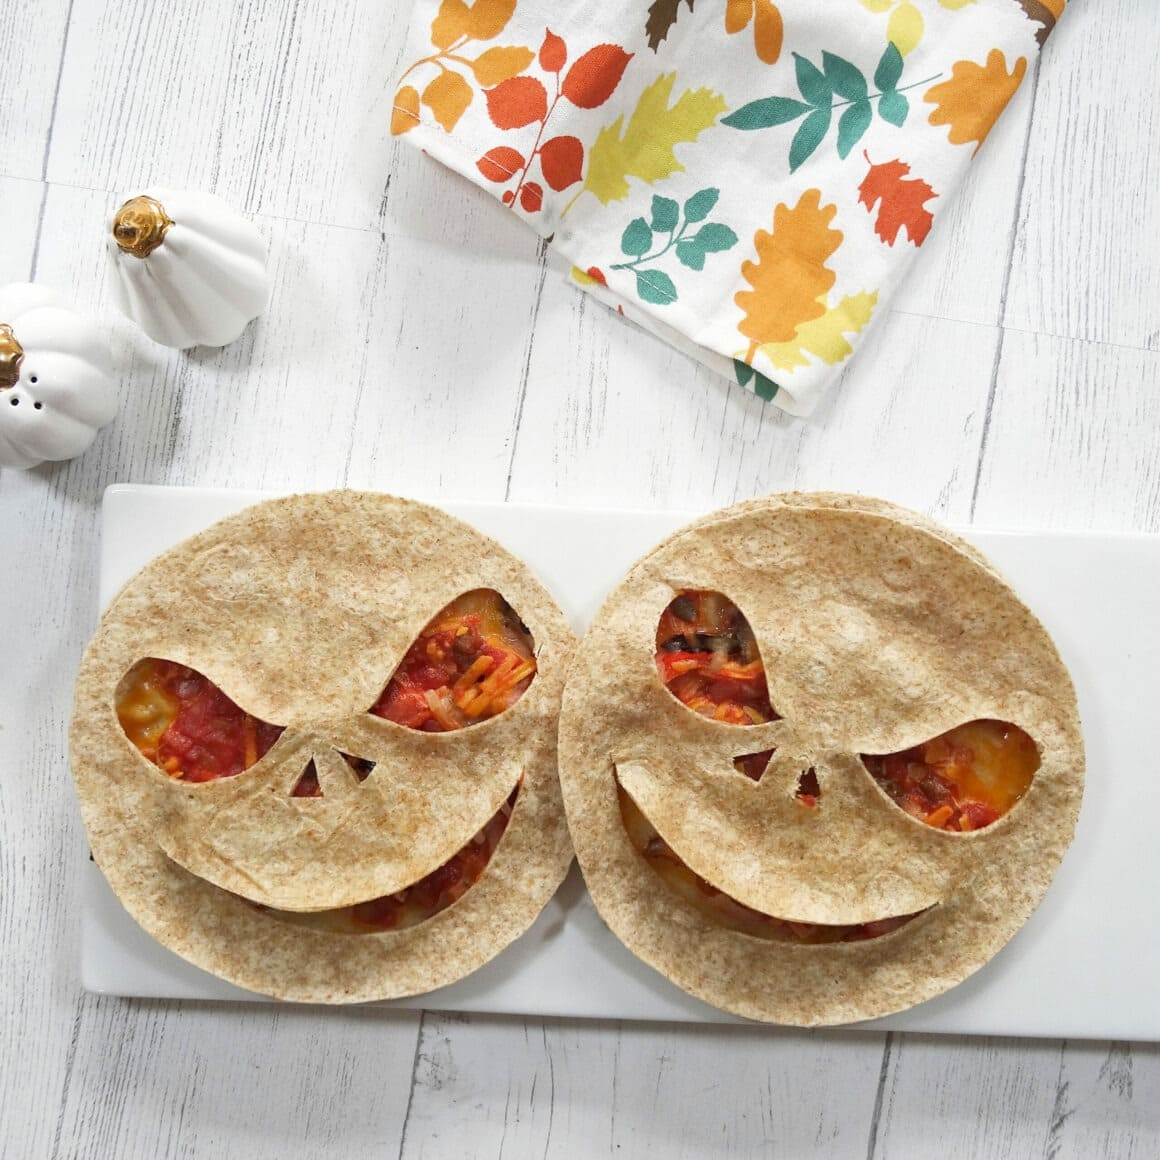 Two quesadillas with creepy faces carved into them for Halloween.